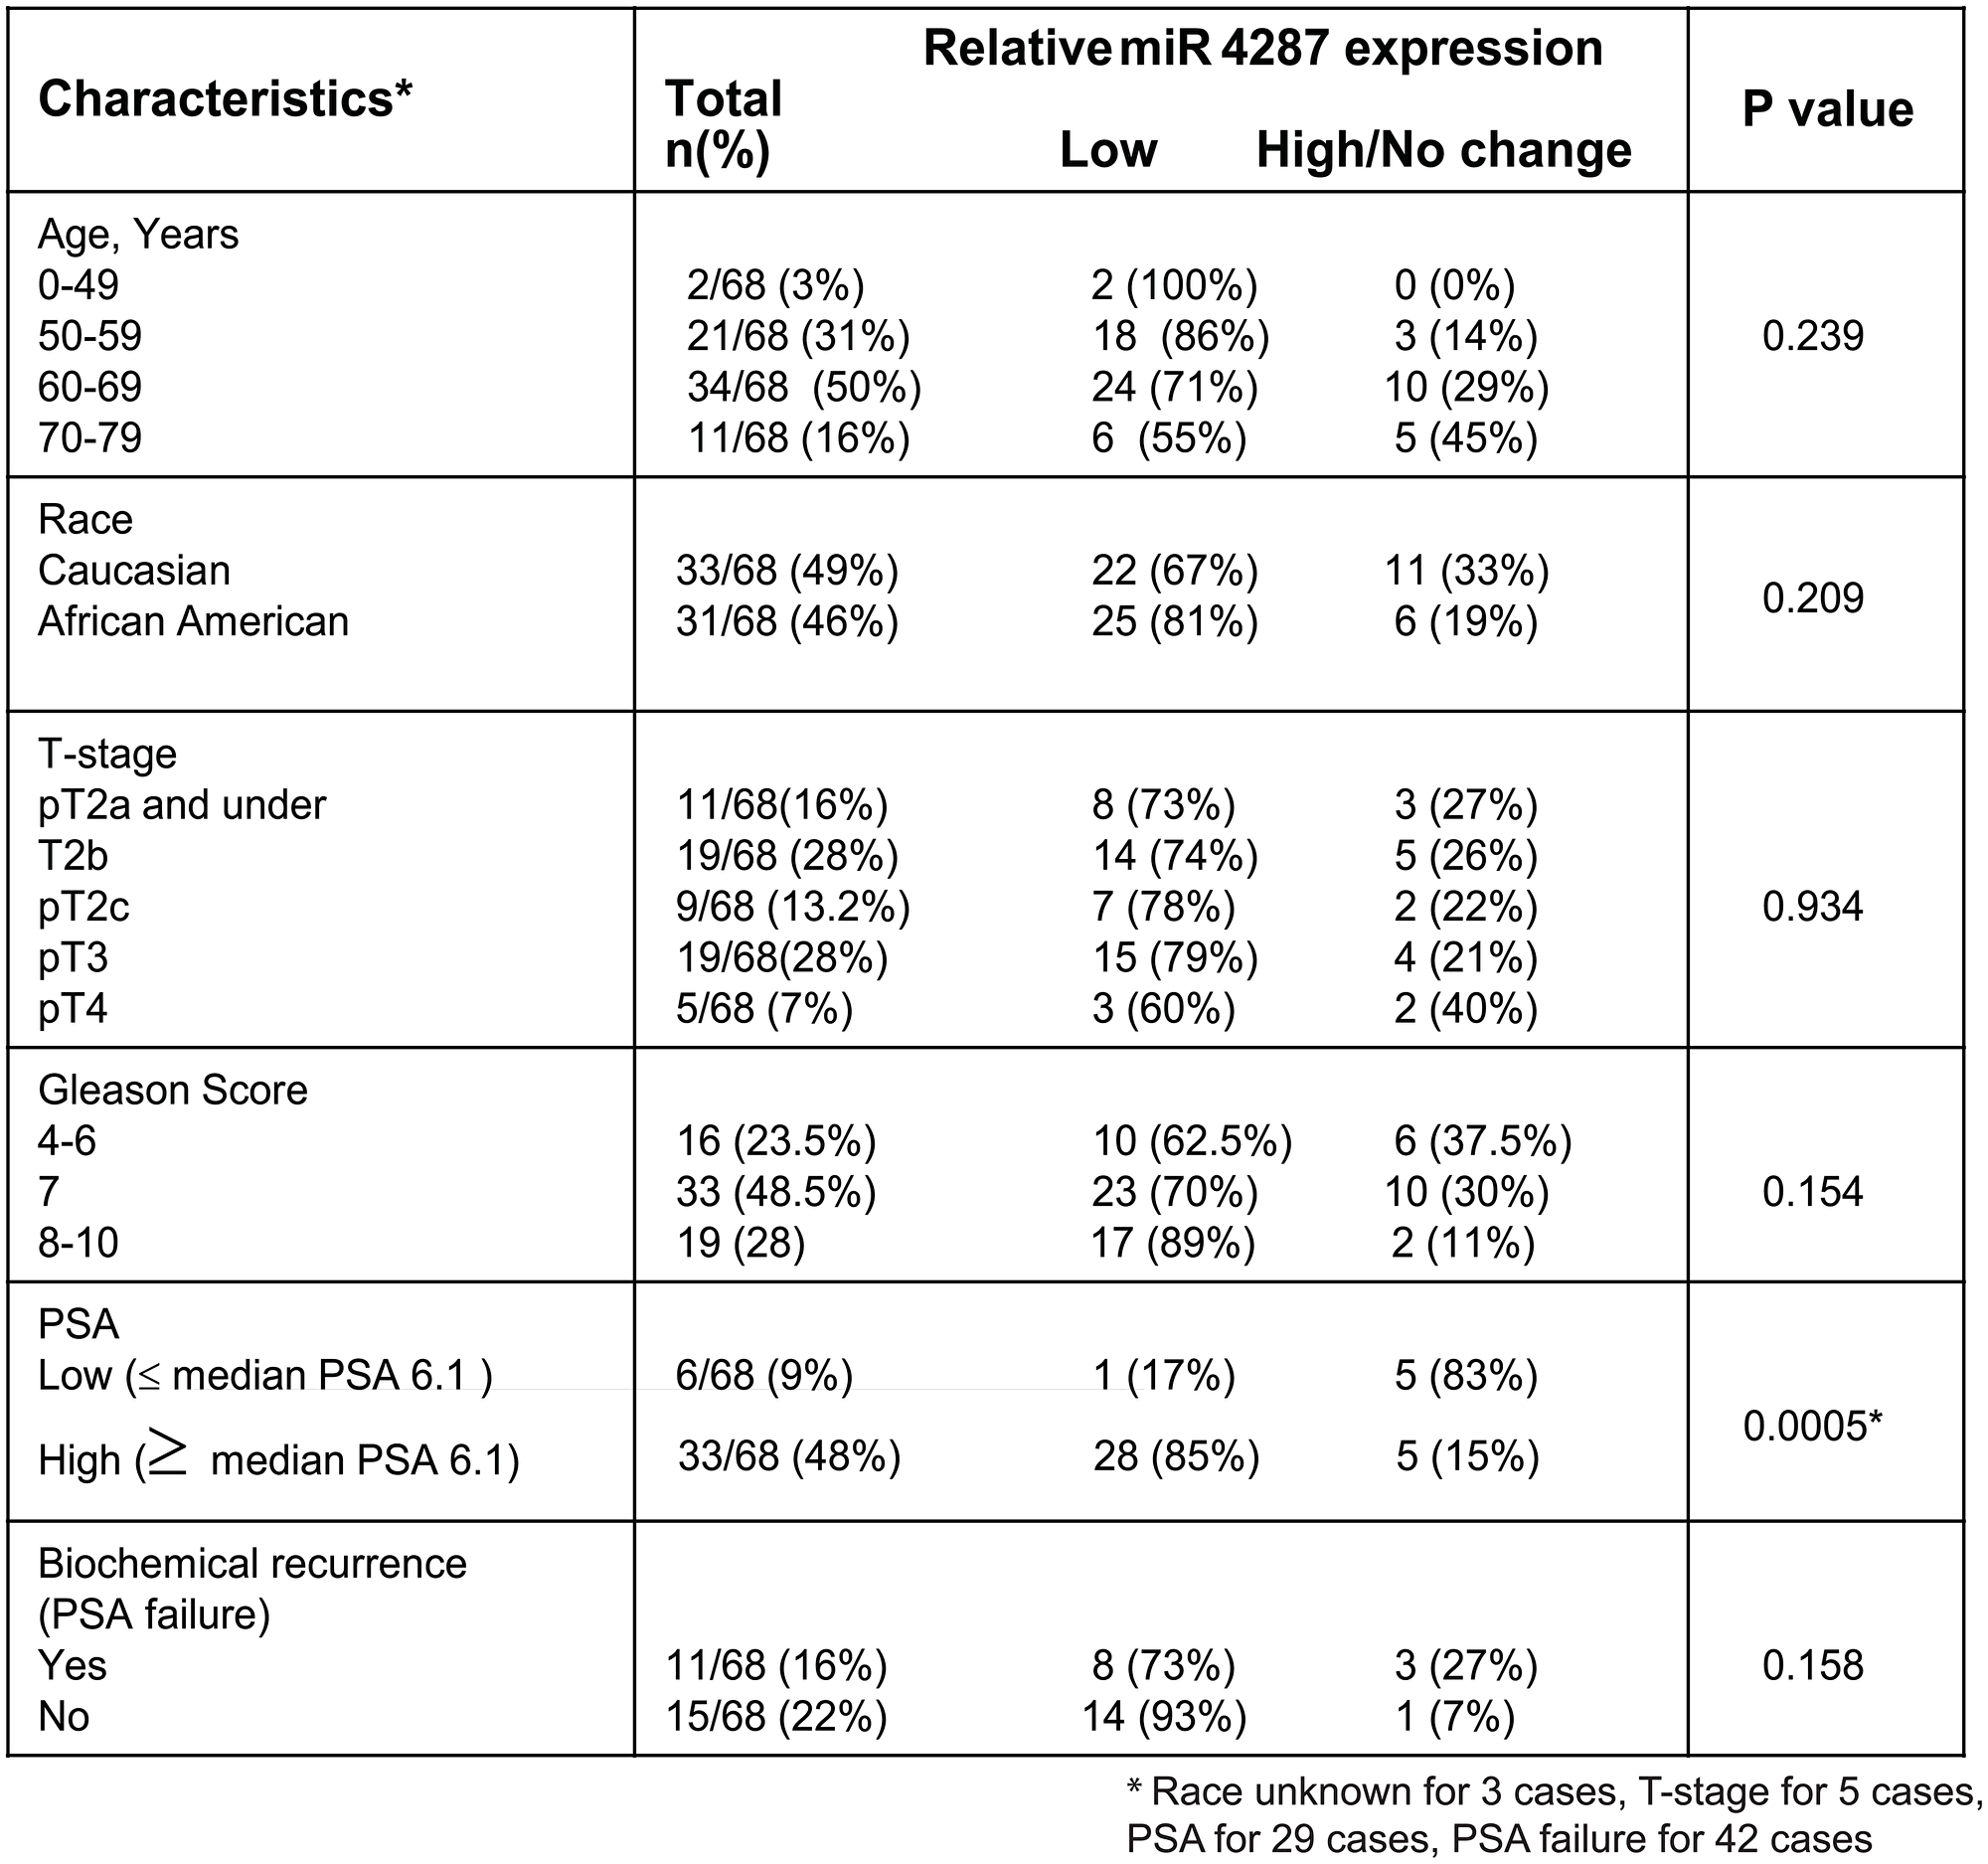 Correlation of miR-4287 expression with clinicopathological parameters of prostate cancer.